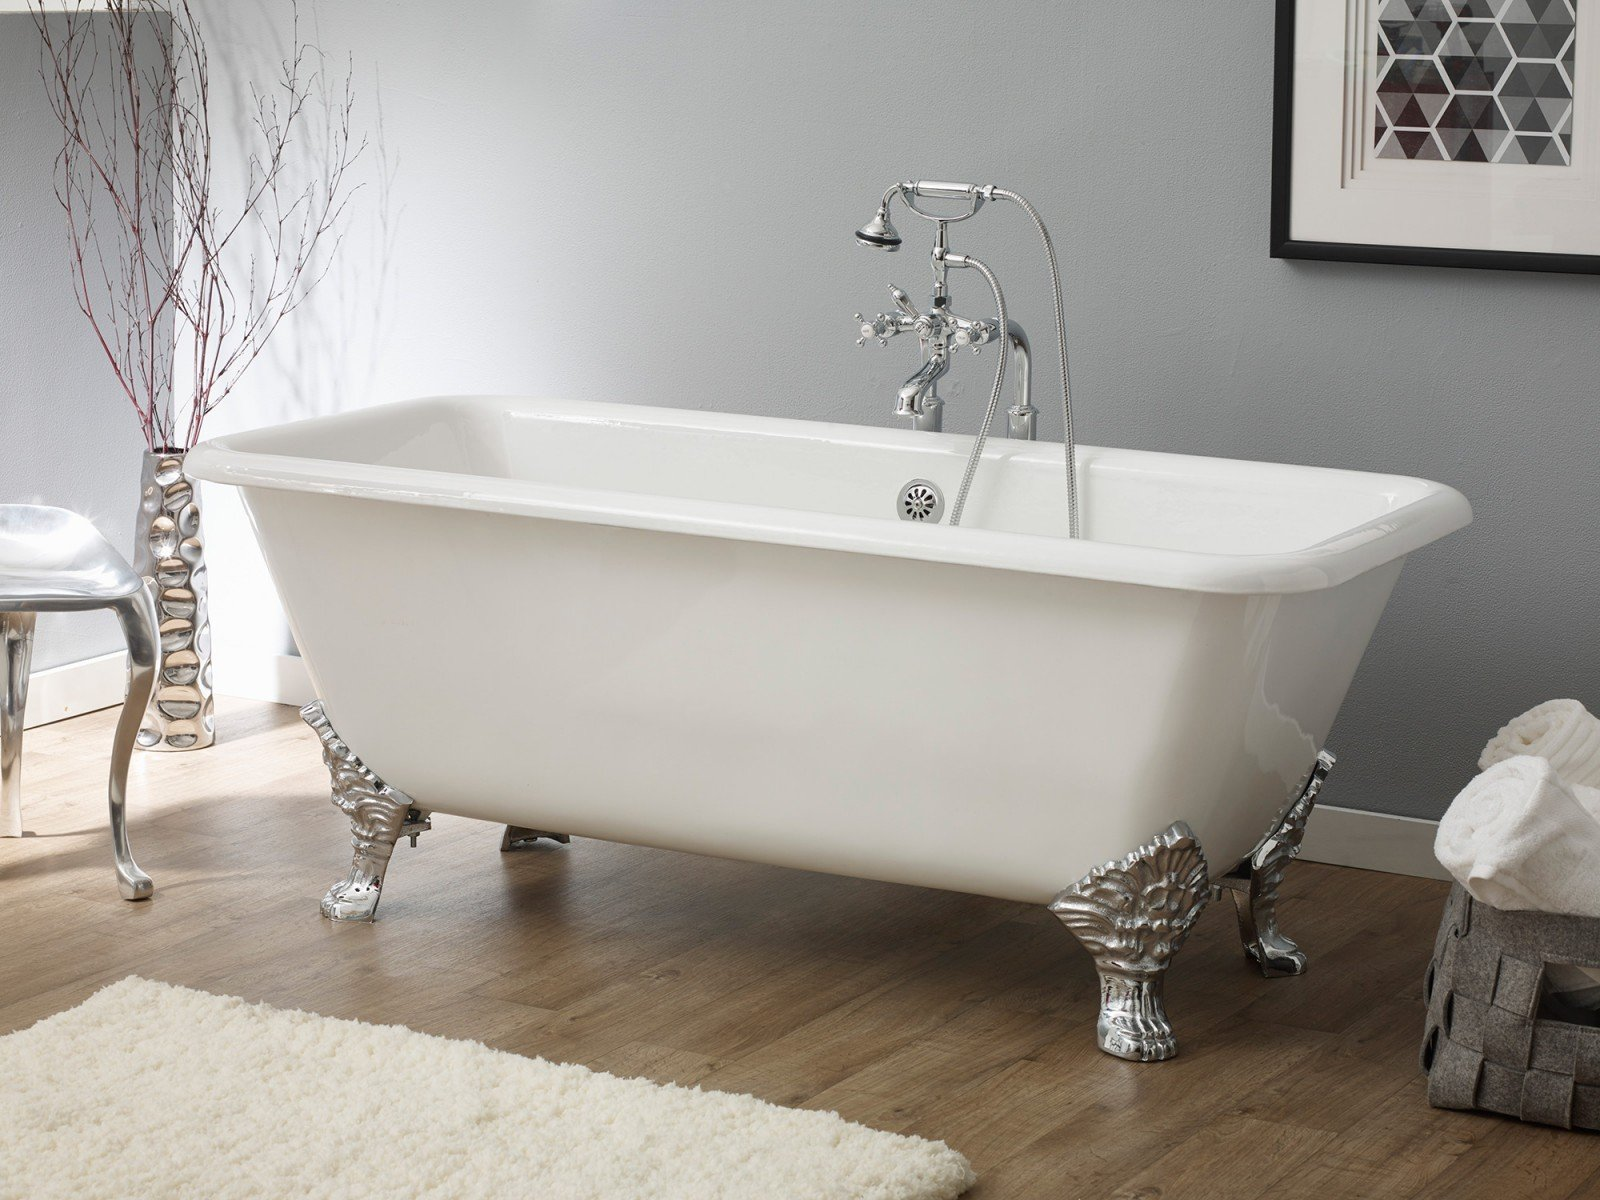 More Images SPENCER Cast Iron Bathtub